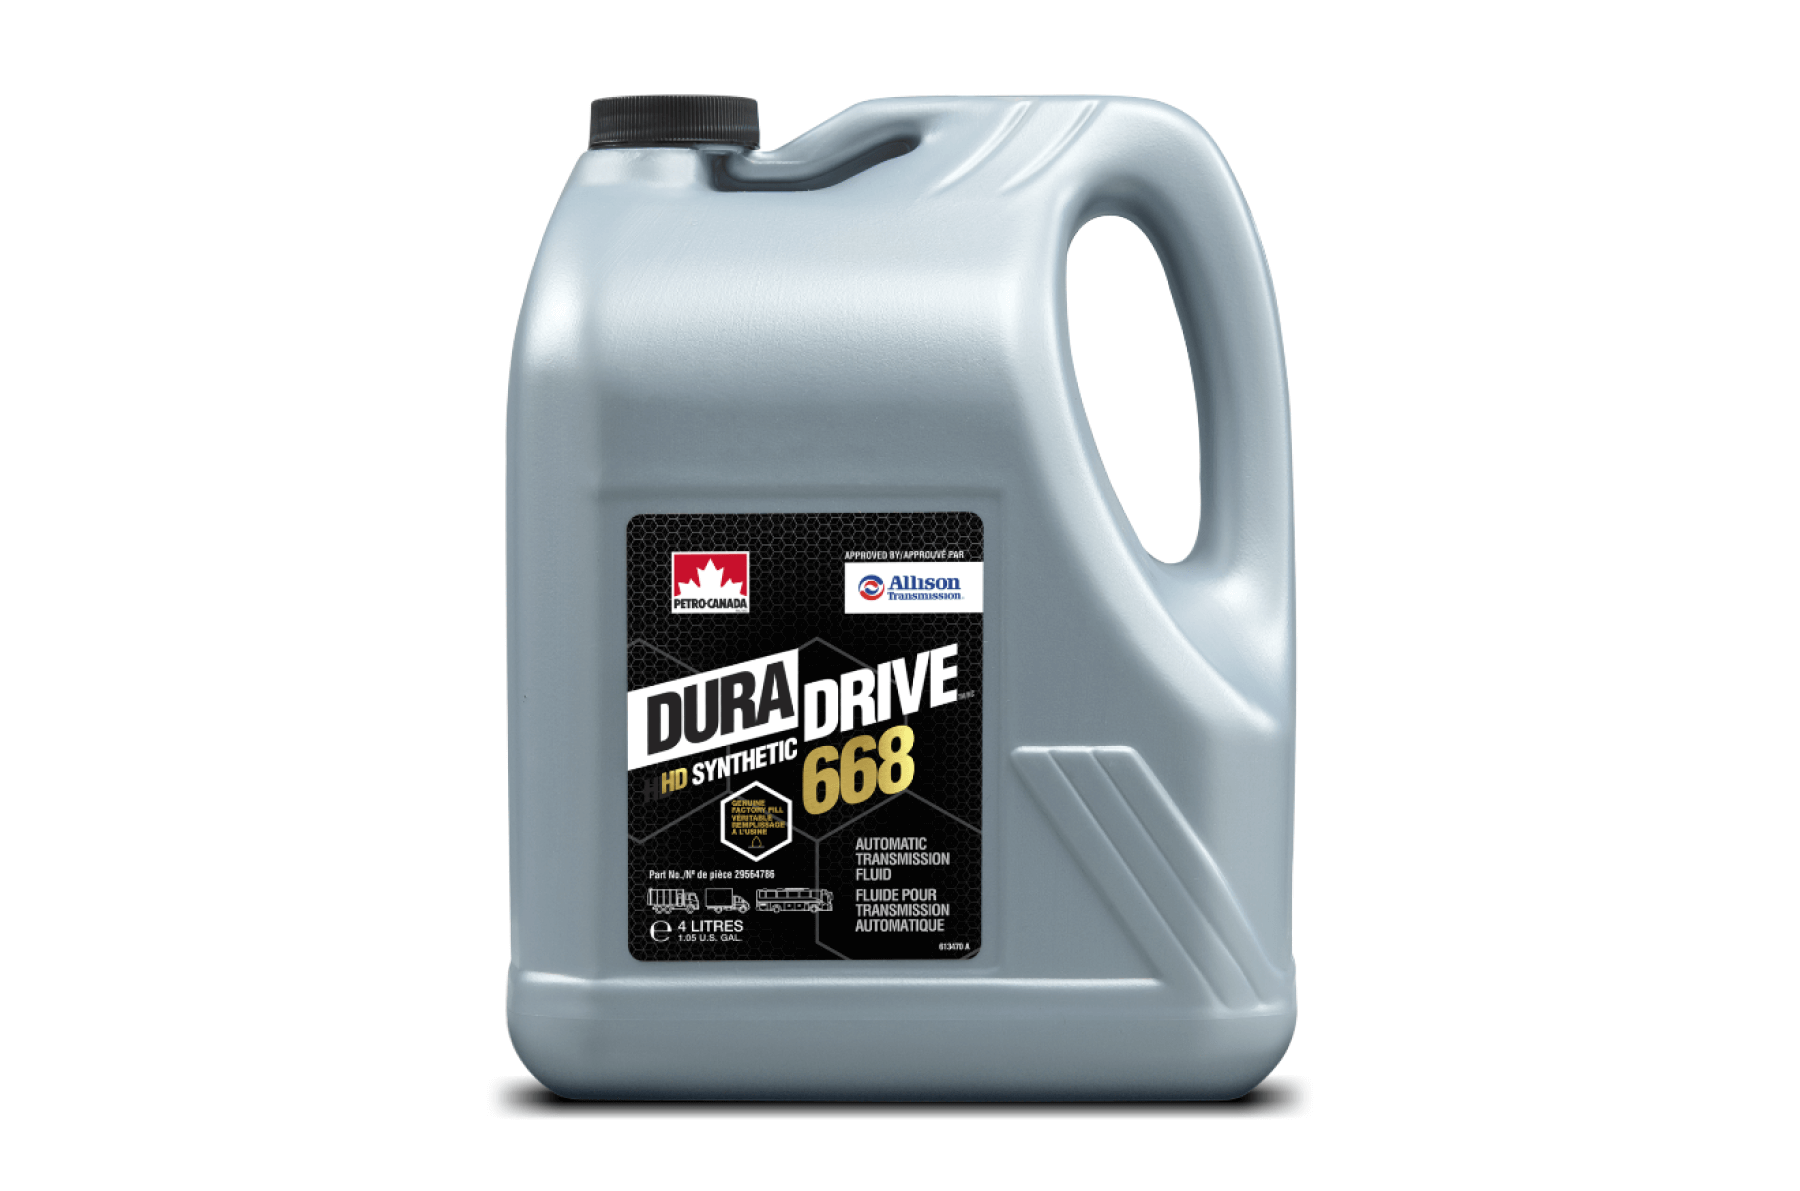 duradrive-hd-synthetic-668